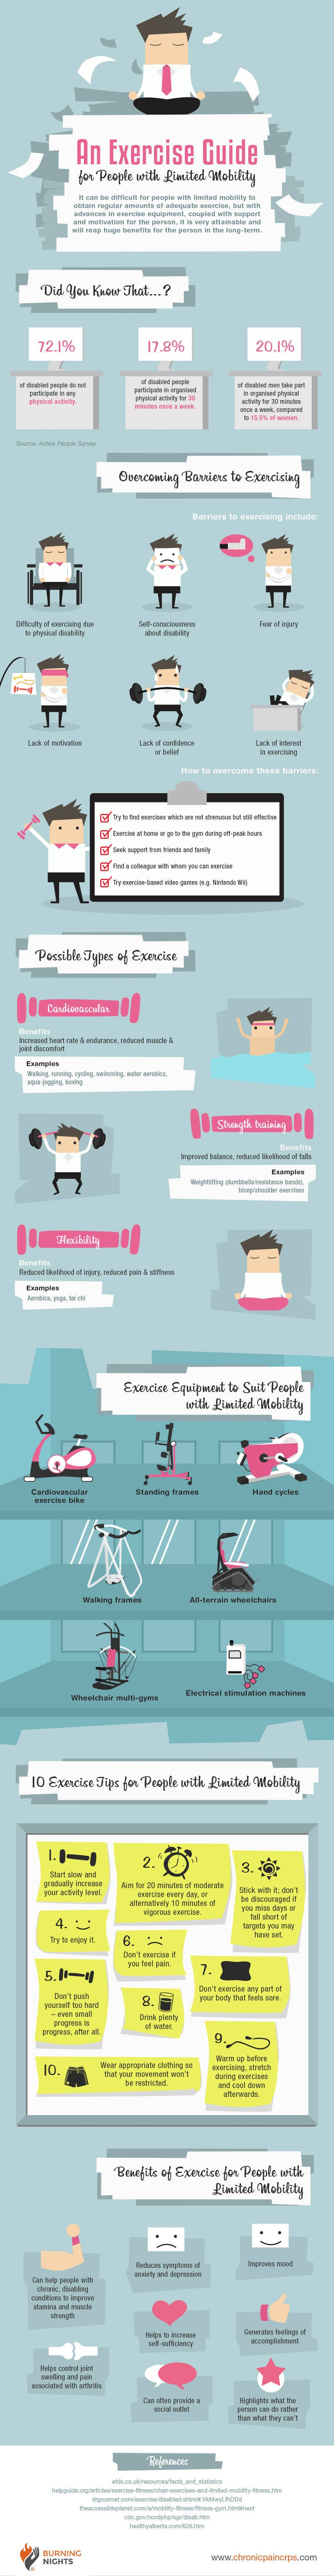 Exercise-Guide-for-People-with-Limited-Mobility-Infographic